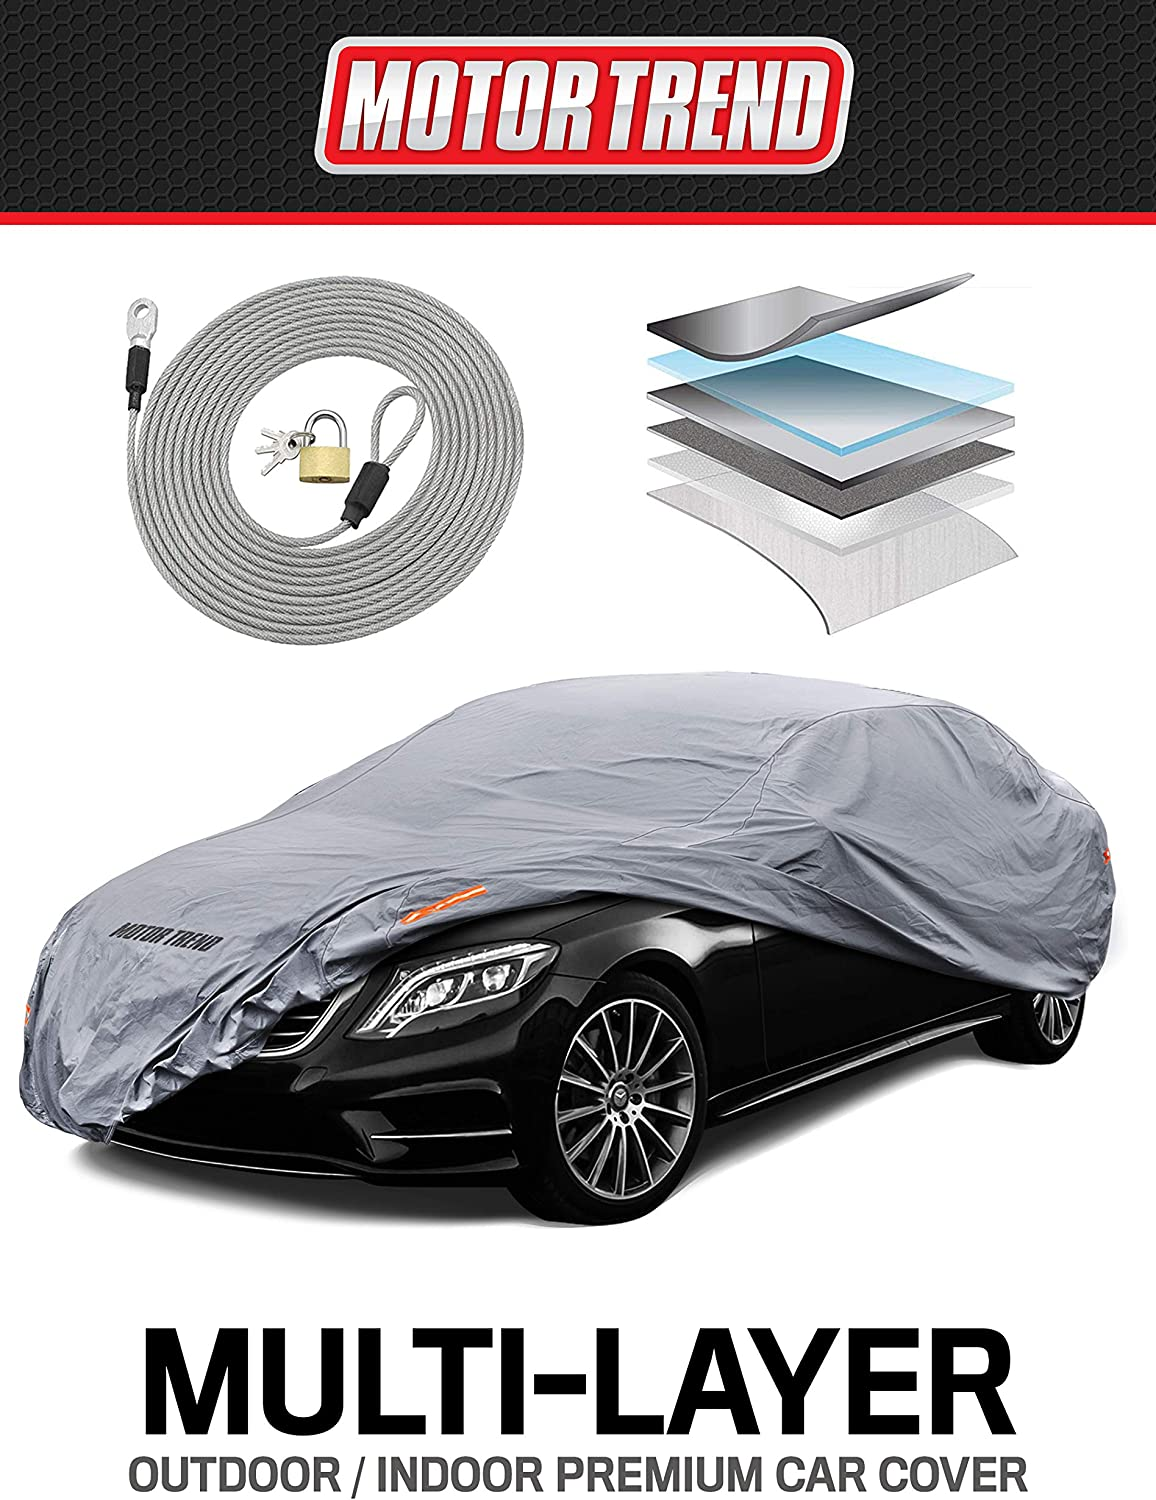 BMW 6 SERIES COUPE PREMIUM HD LUXURY FULLY WATERPROOF CAR COVER COTTON LINED